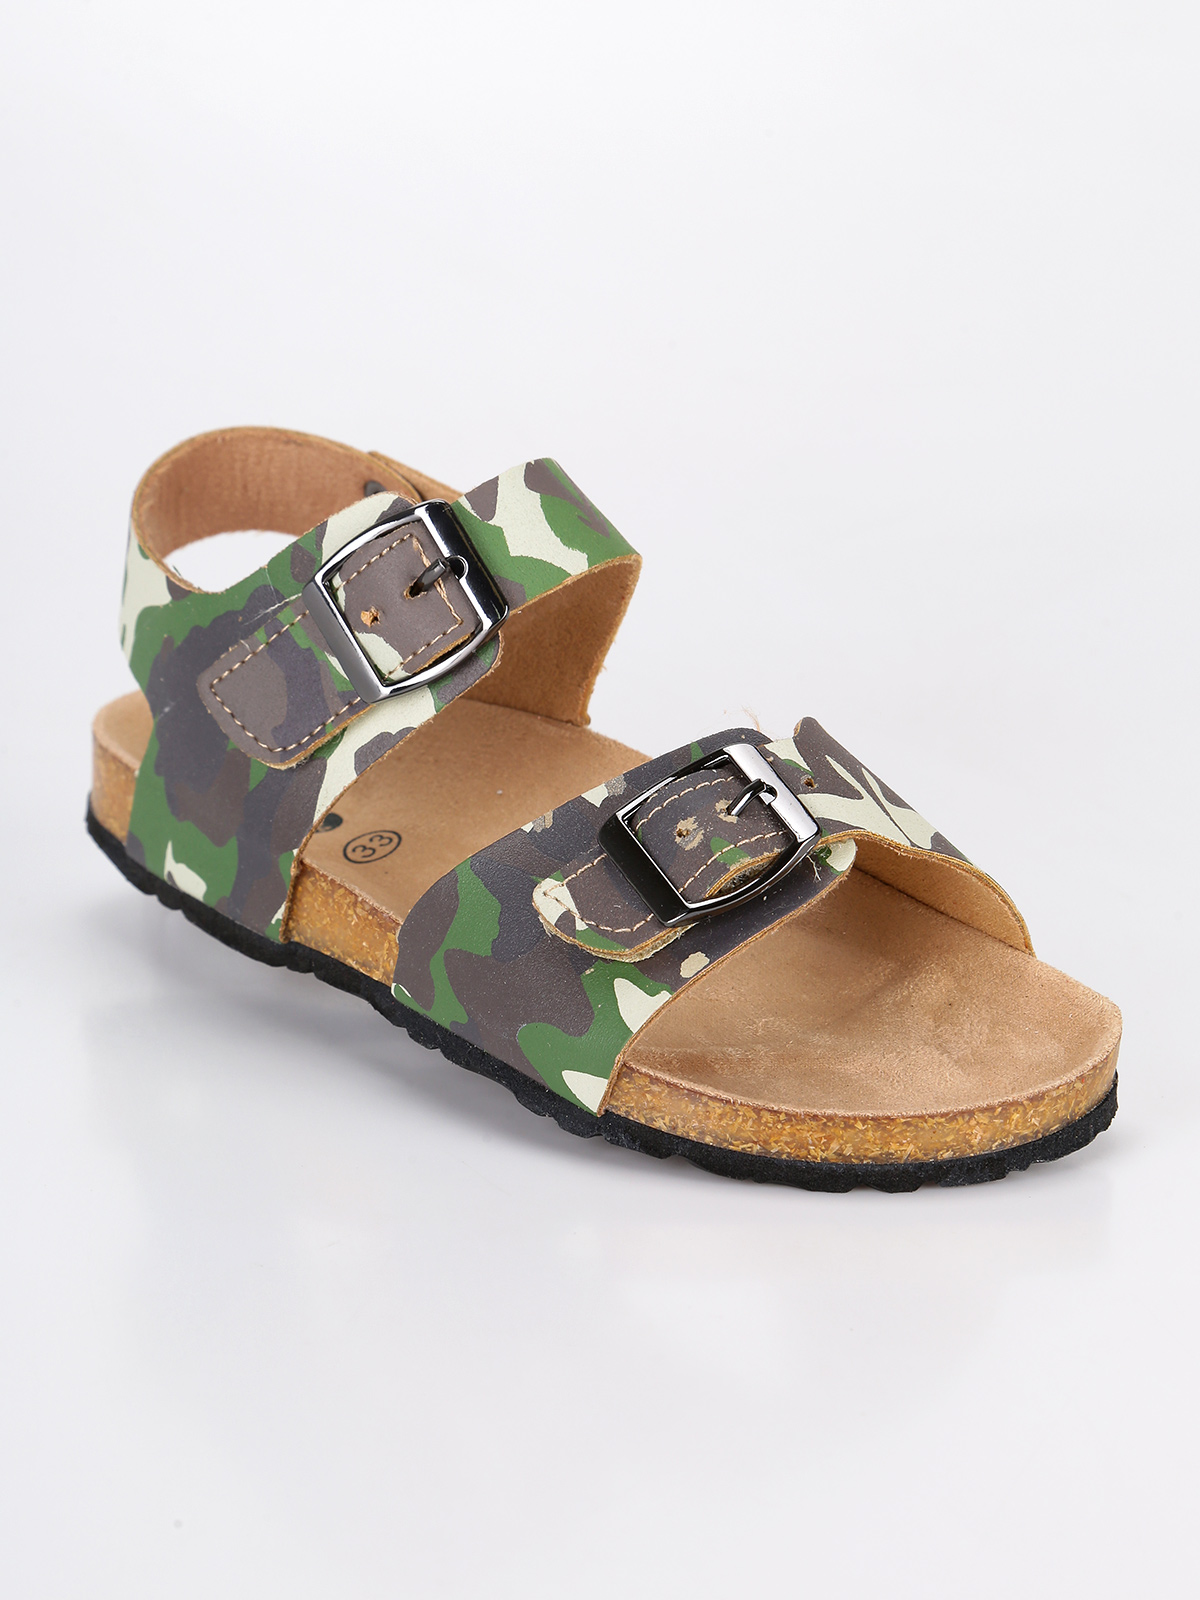 ACE Sandals camouflage with buckles|  - title=